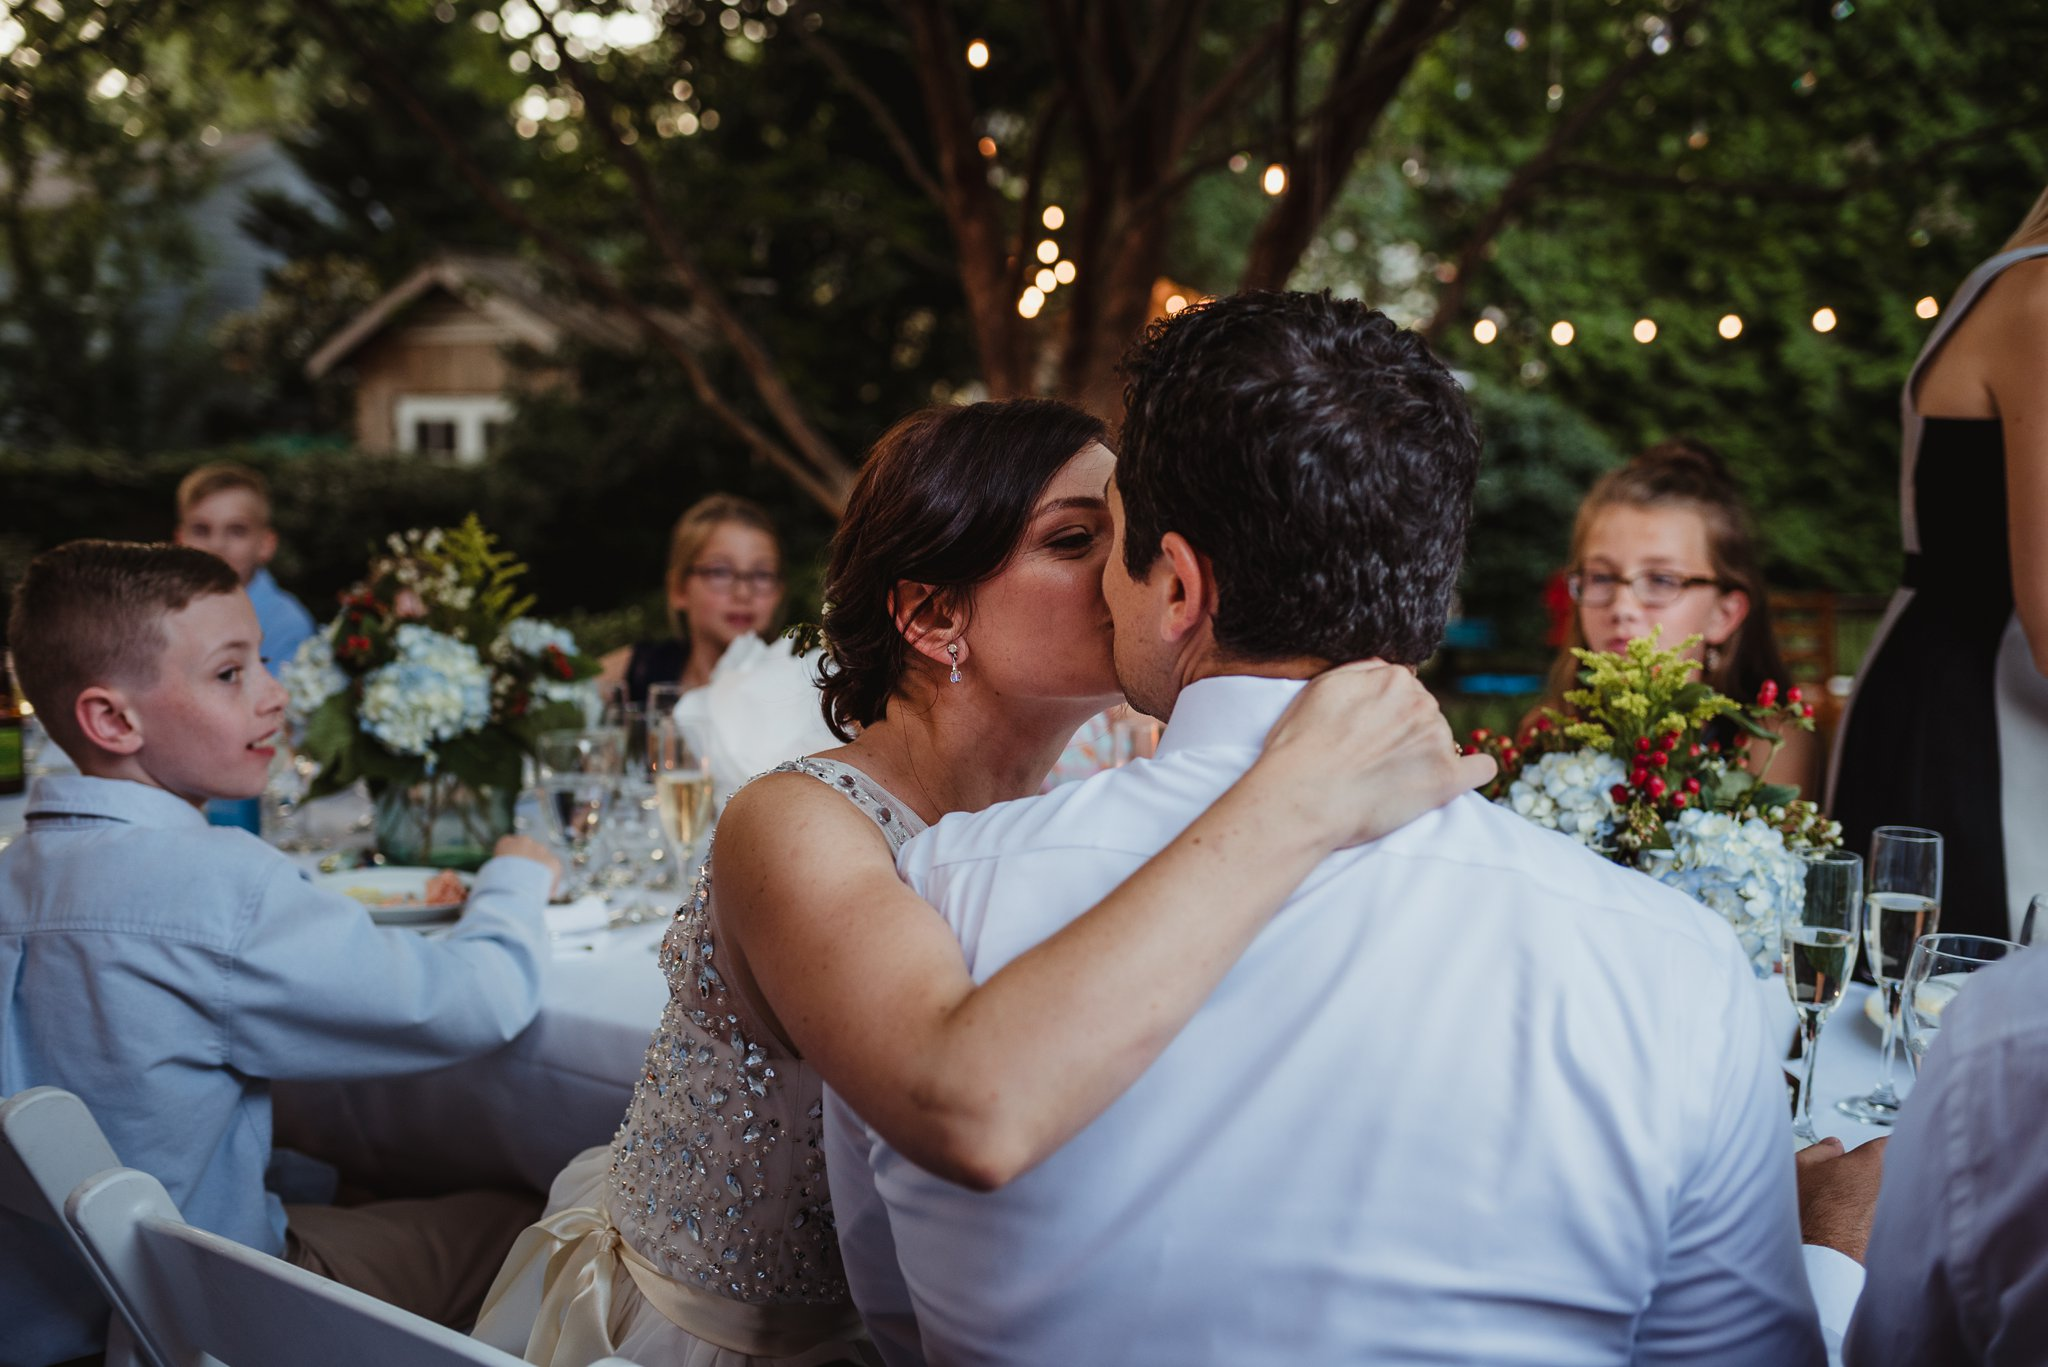 The bride and groom kiss during their intimate wedding reception in their backyard in Raleigh under the market lights, photo by Rose Trail Images.